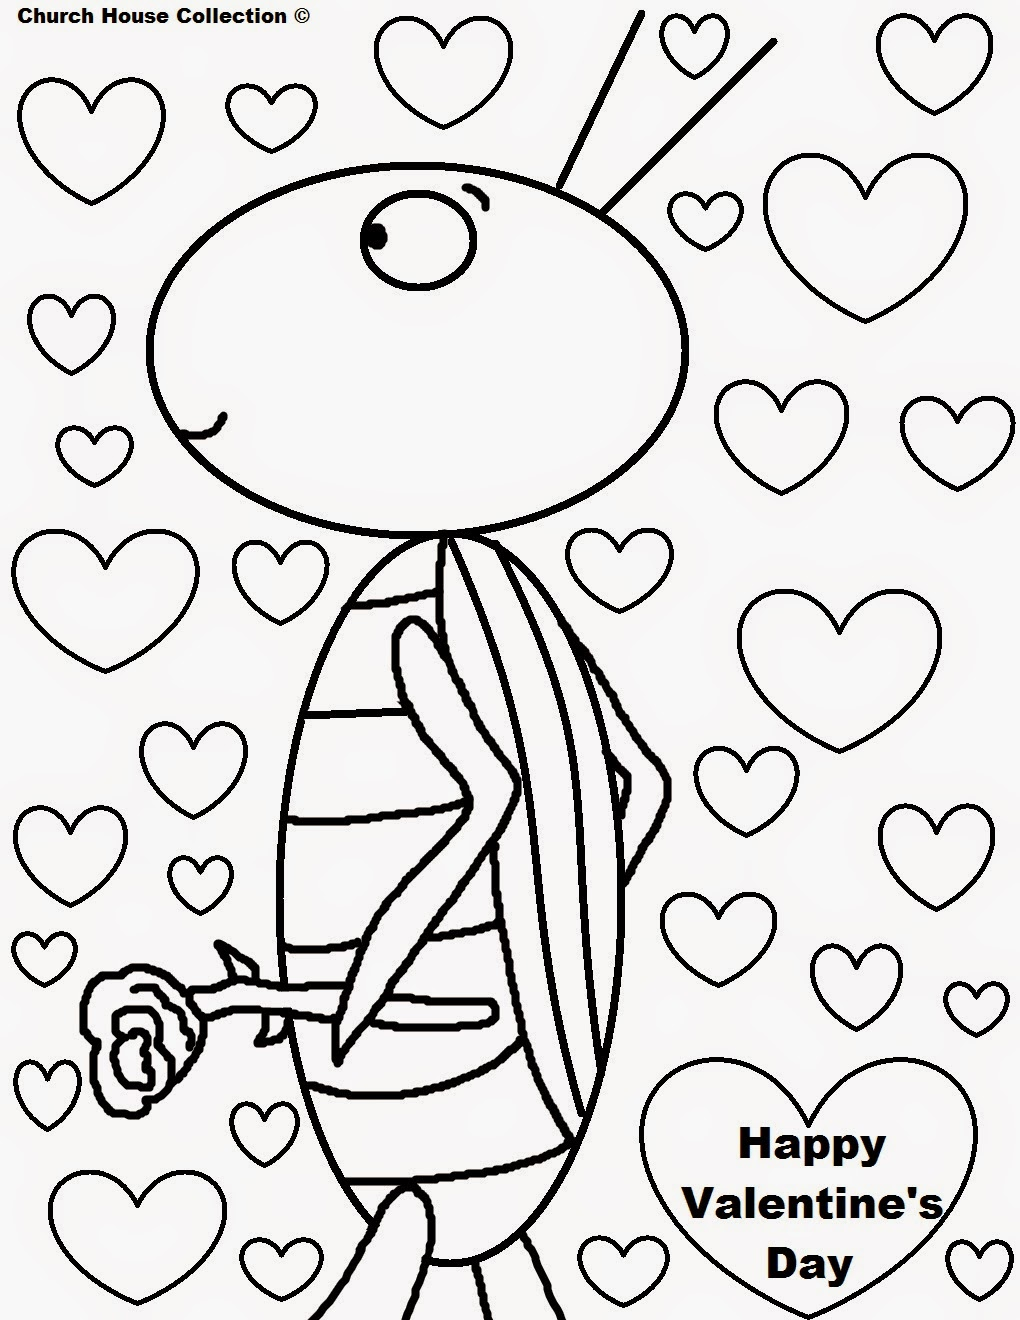 valentines day coloring pages crayola Free Coloring